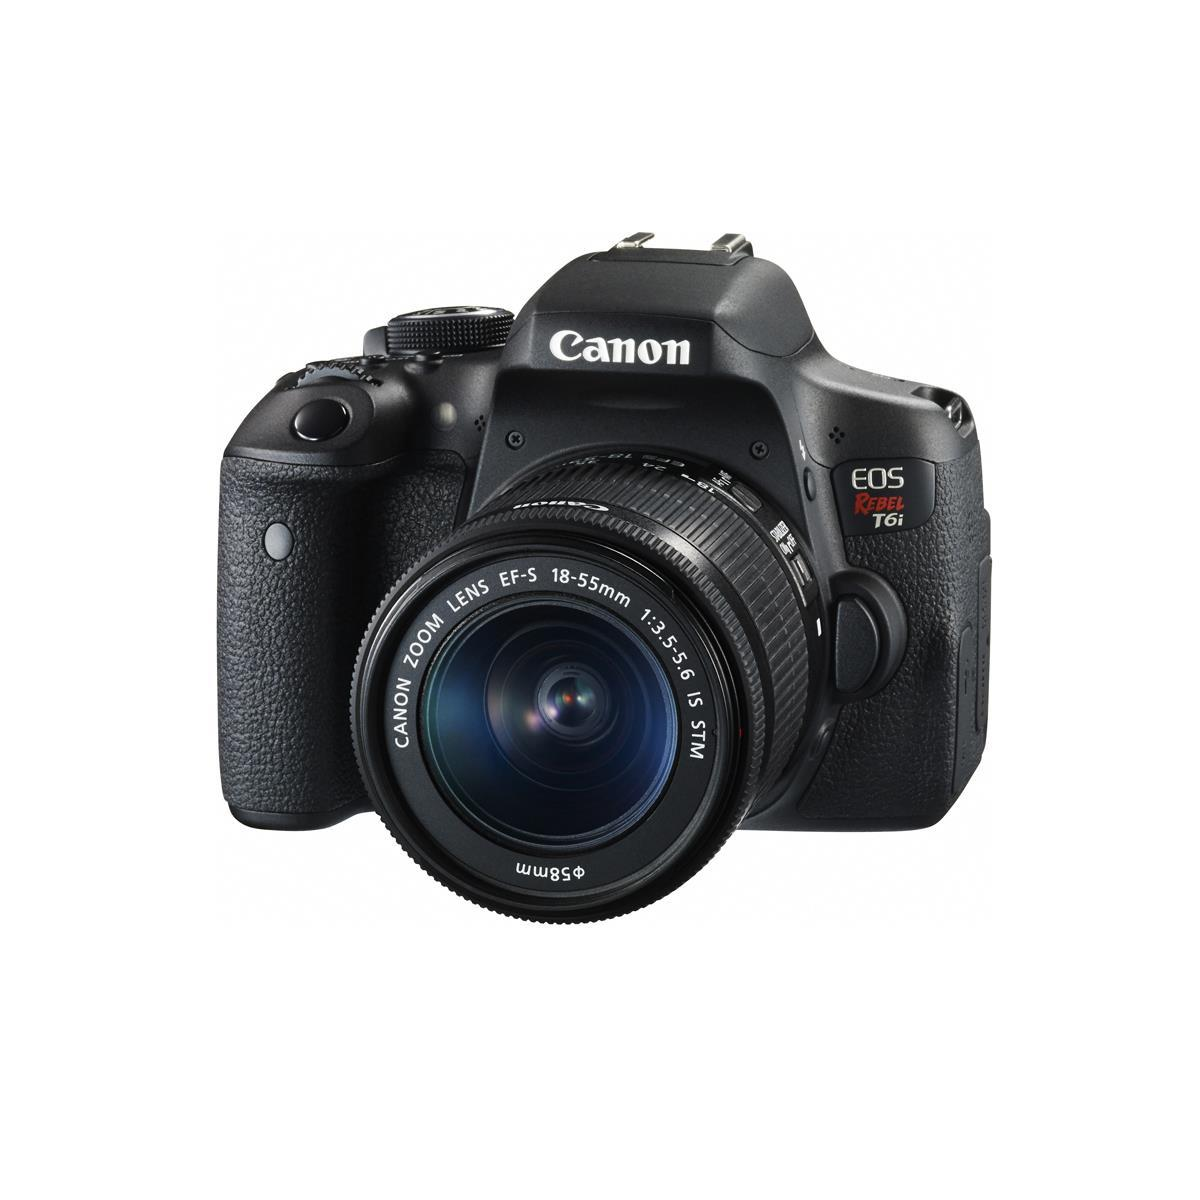 Canon EOS T6i DSLR Camera with EF-S 18-55mm Lens, PIXMA PRO100 Printer and Samsung EVO+ 64GB